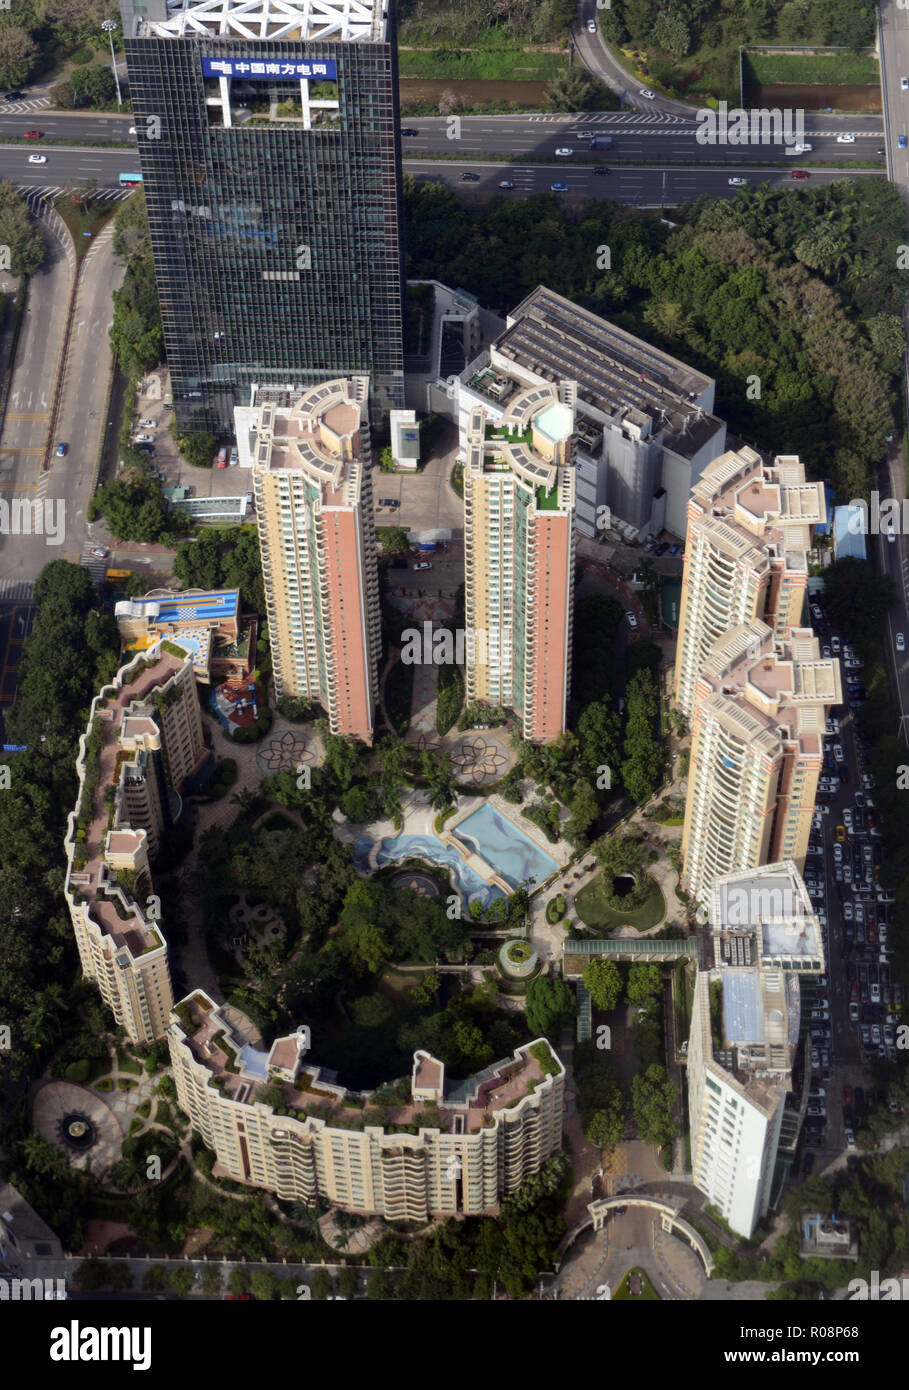 Aerial view of a residential complex in Futian, Shenzhen. - Stock Image